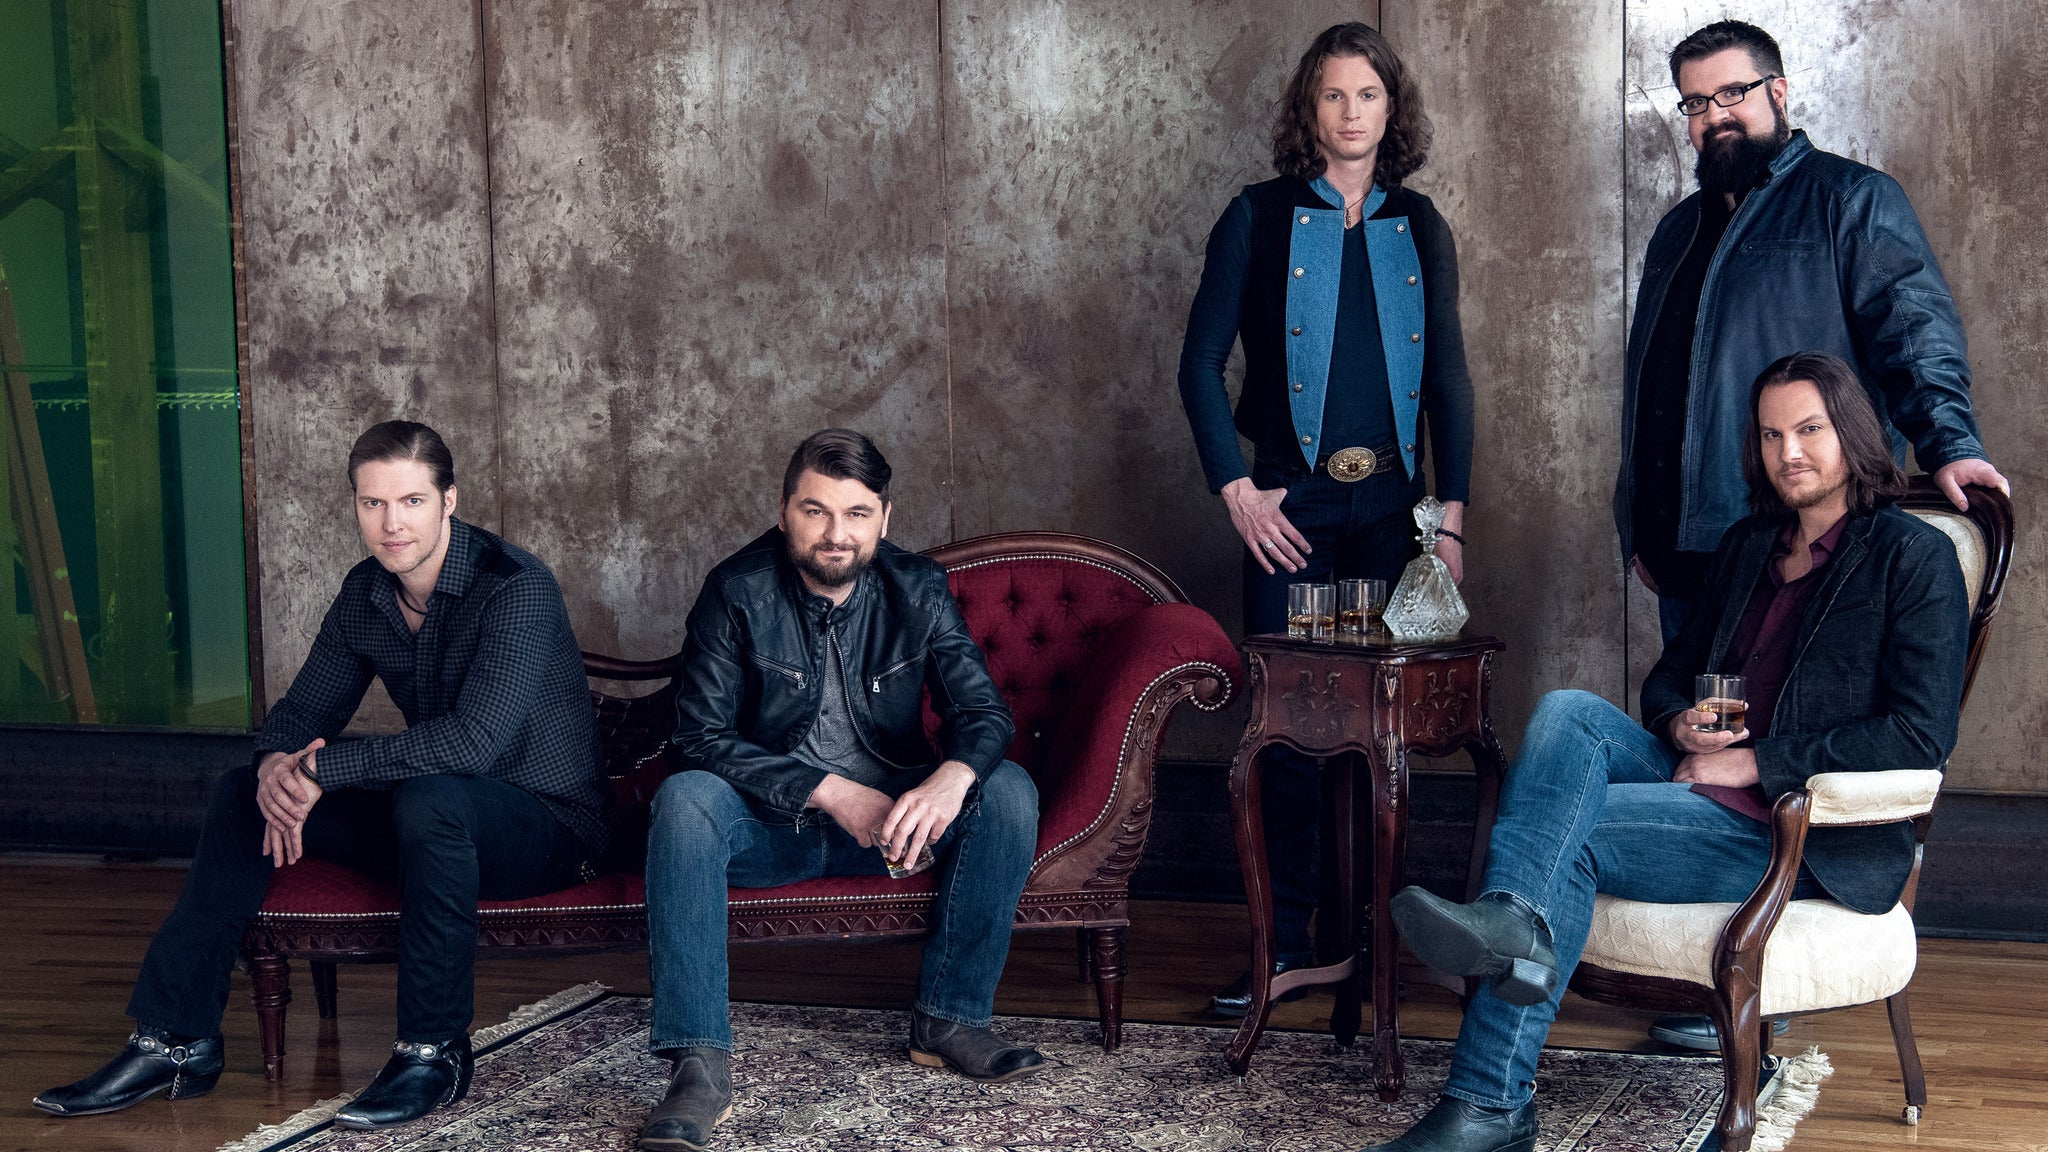 Home Free: Country Christmas at Adler Theatre